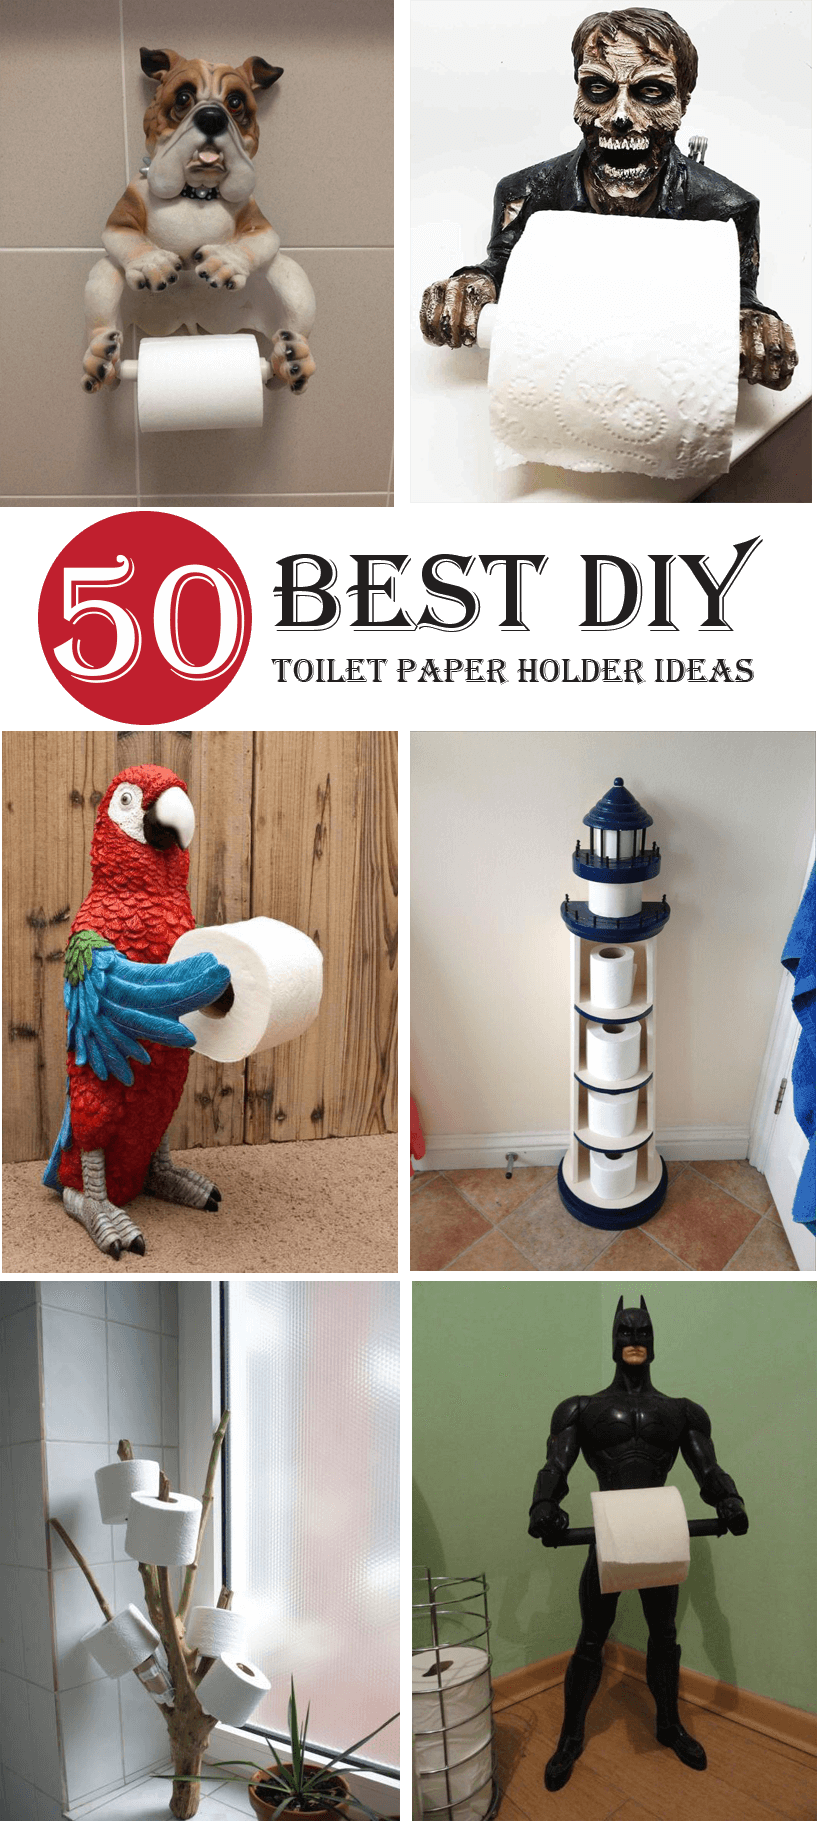 50 Best DIY Toilet Paper Holder Ideas and Designs Youll Love